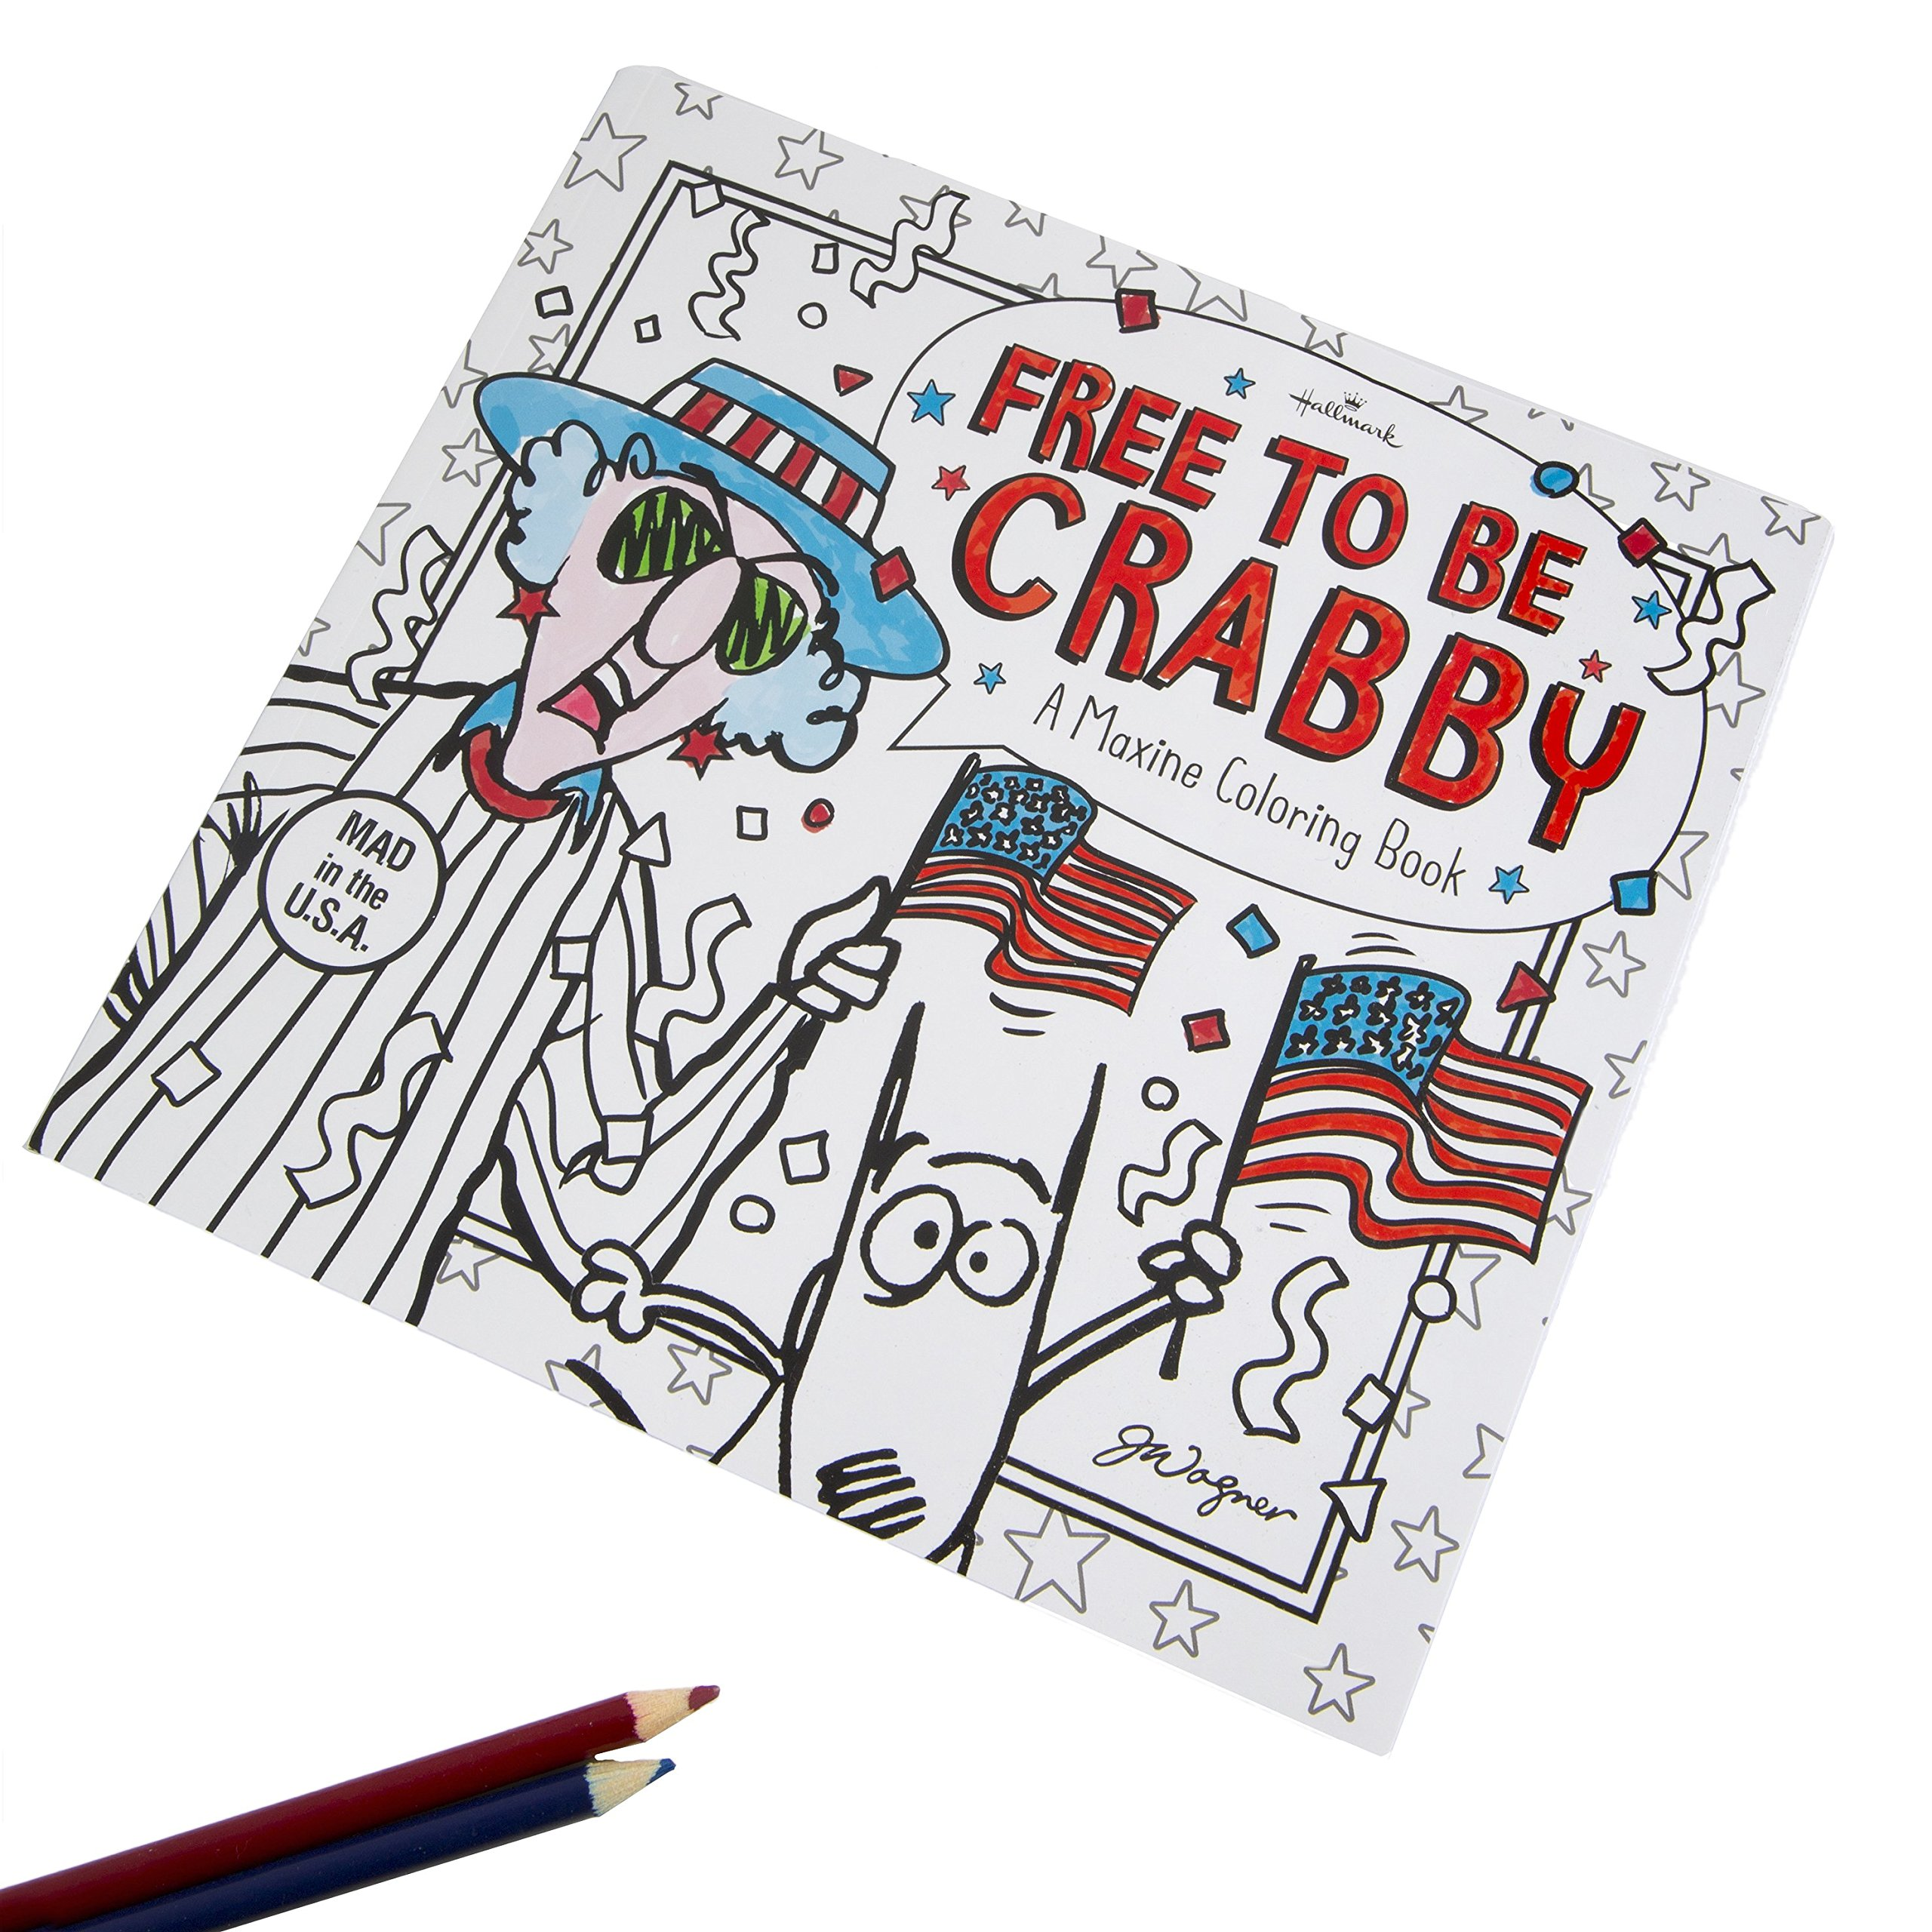 Maxine Free To Be Crabby Coloring Book For Adults From The Hallmark Creative Collection